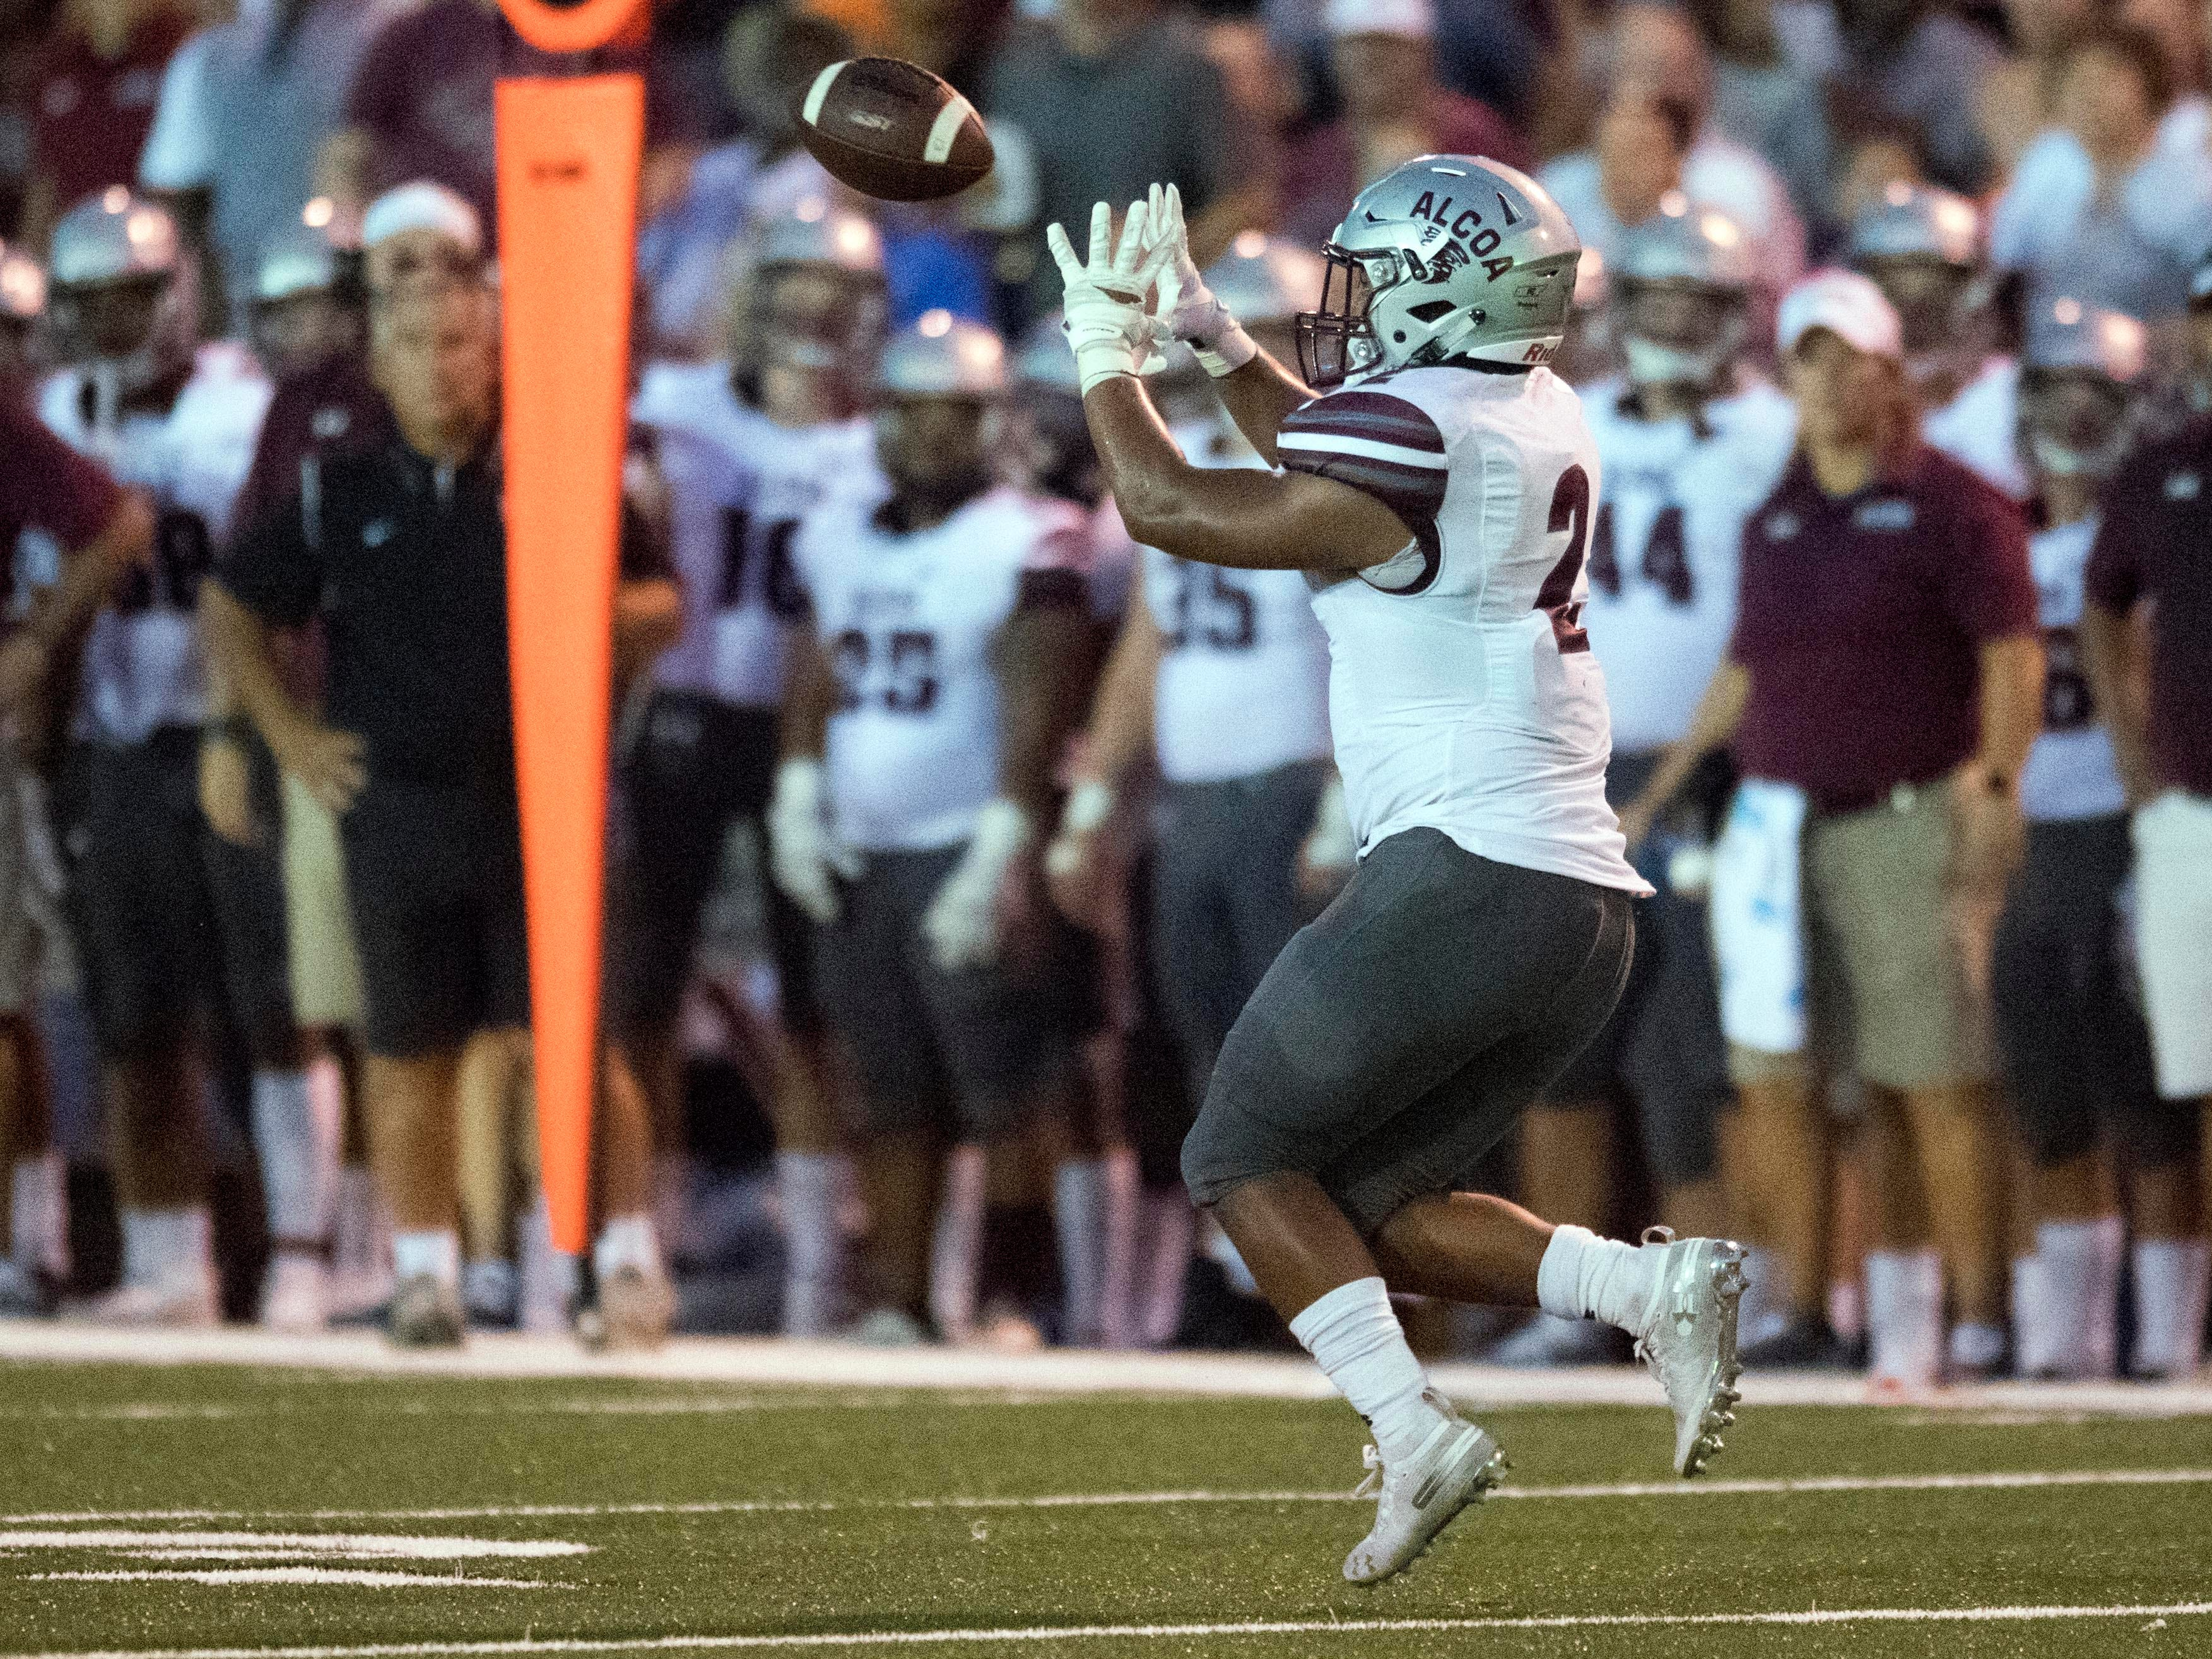 Alcoa's K'Vaughn Tyson (2) makes the catch in the football game against Maryville on Friday, September 7, 2018.